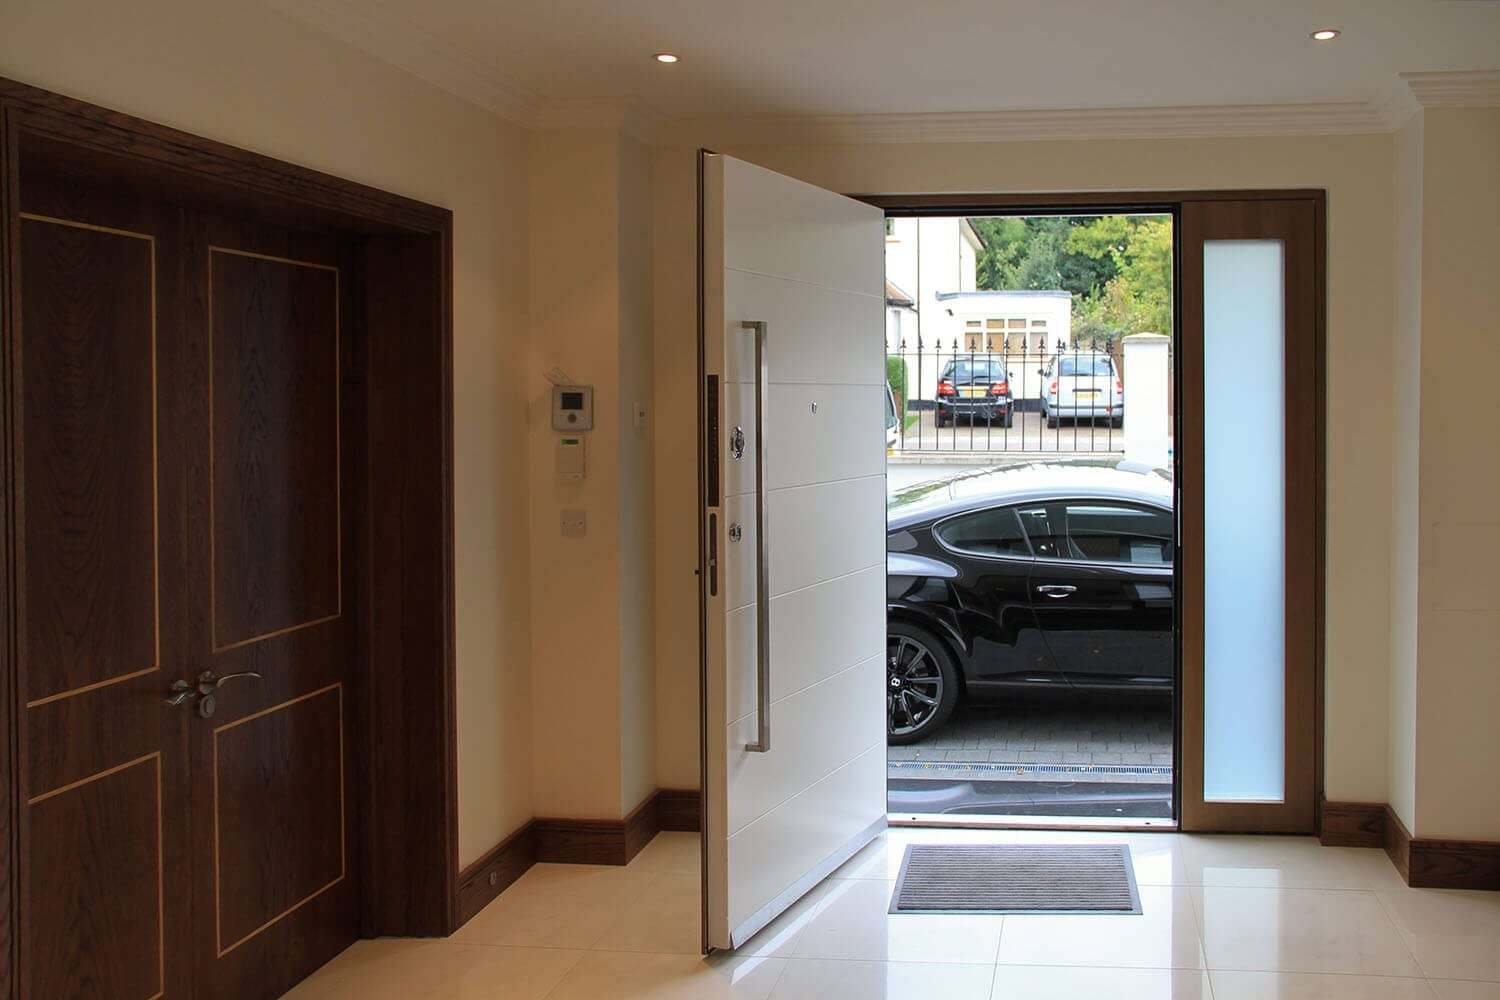 Modern, contemporary security door